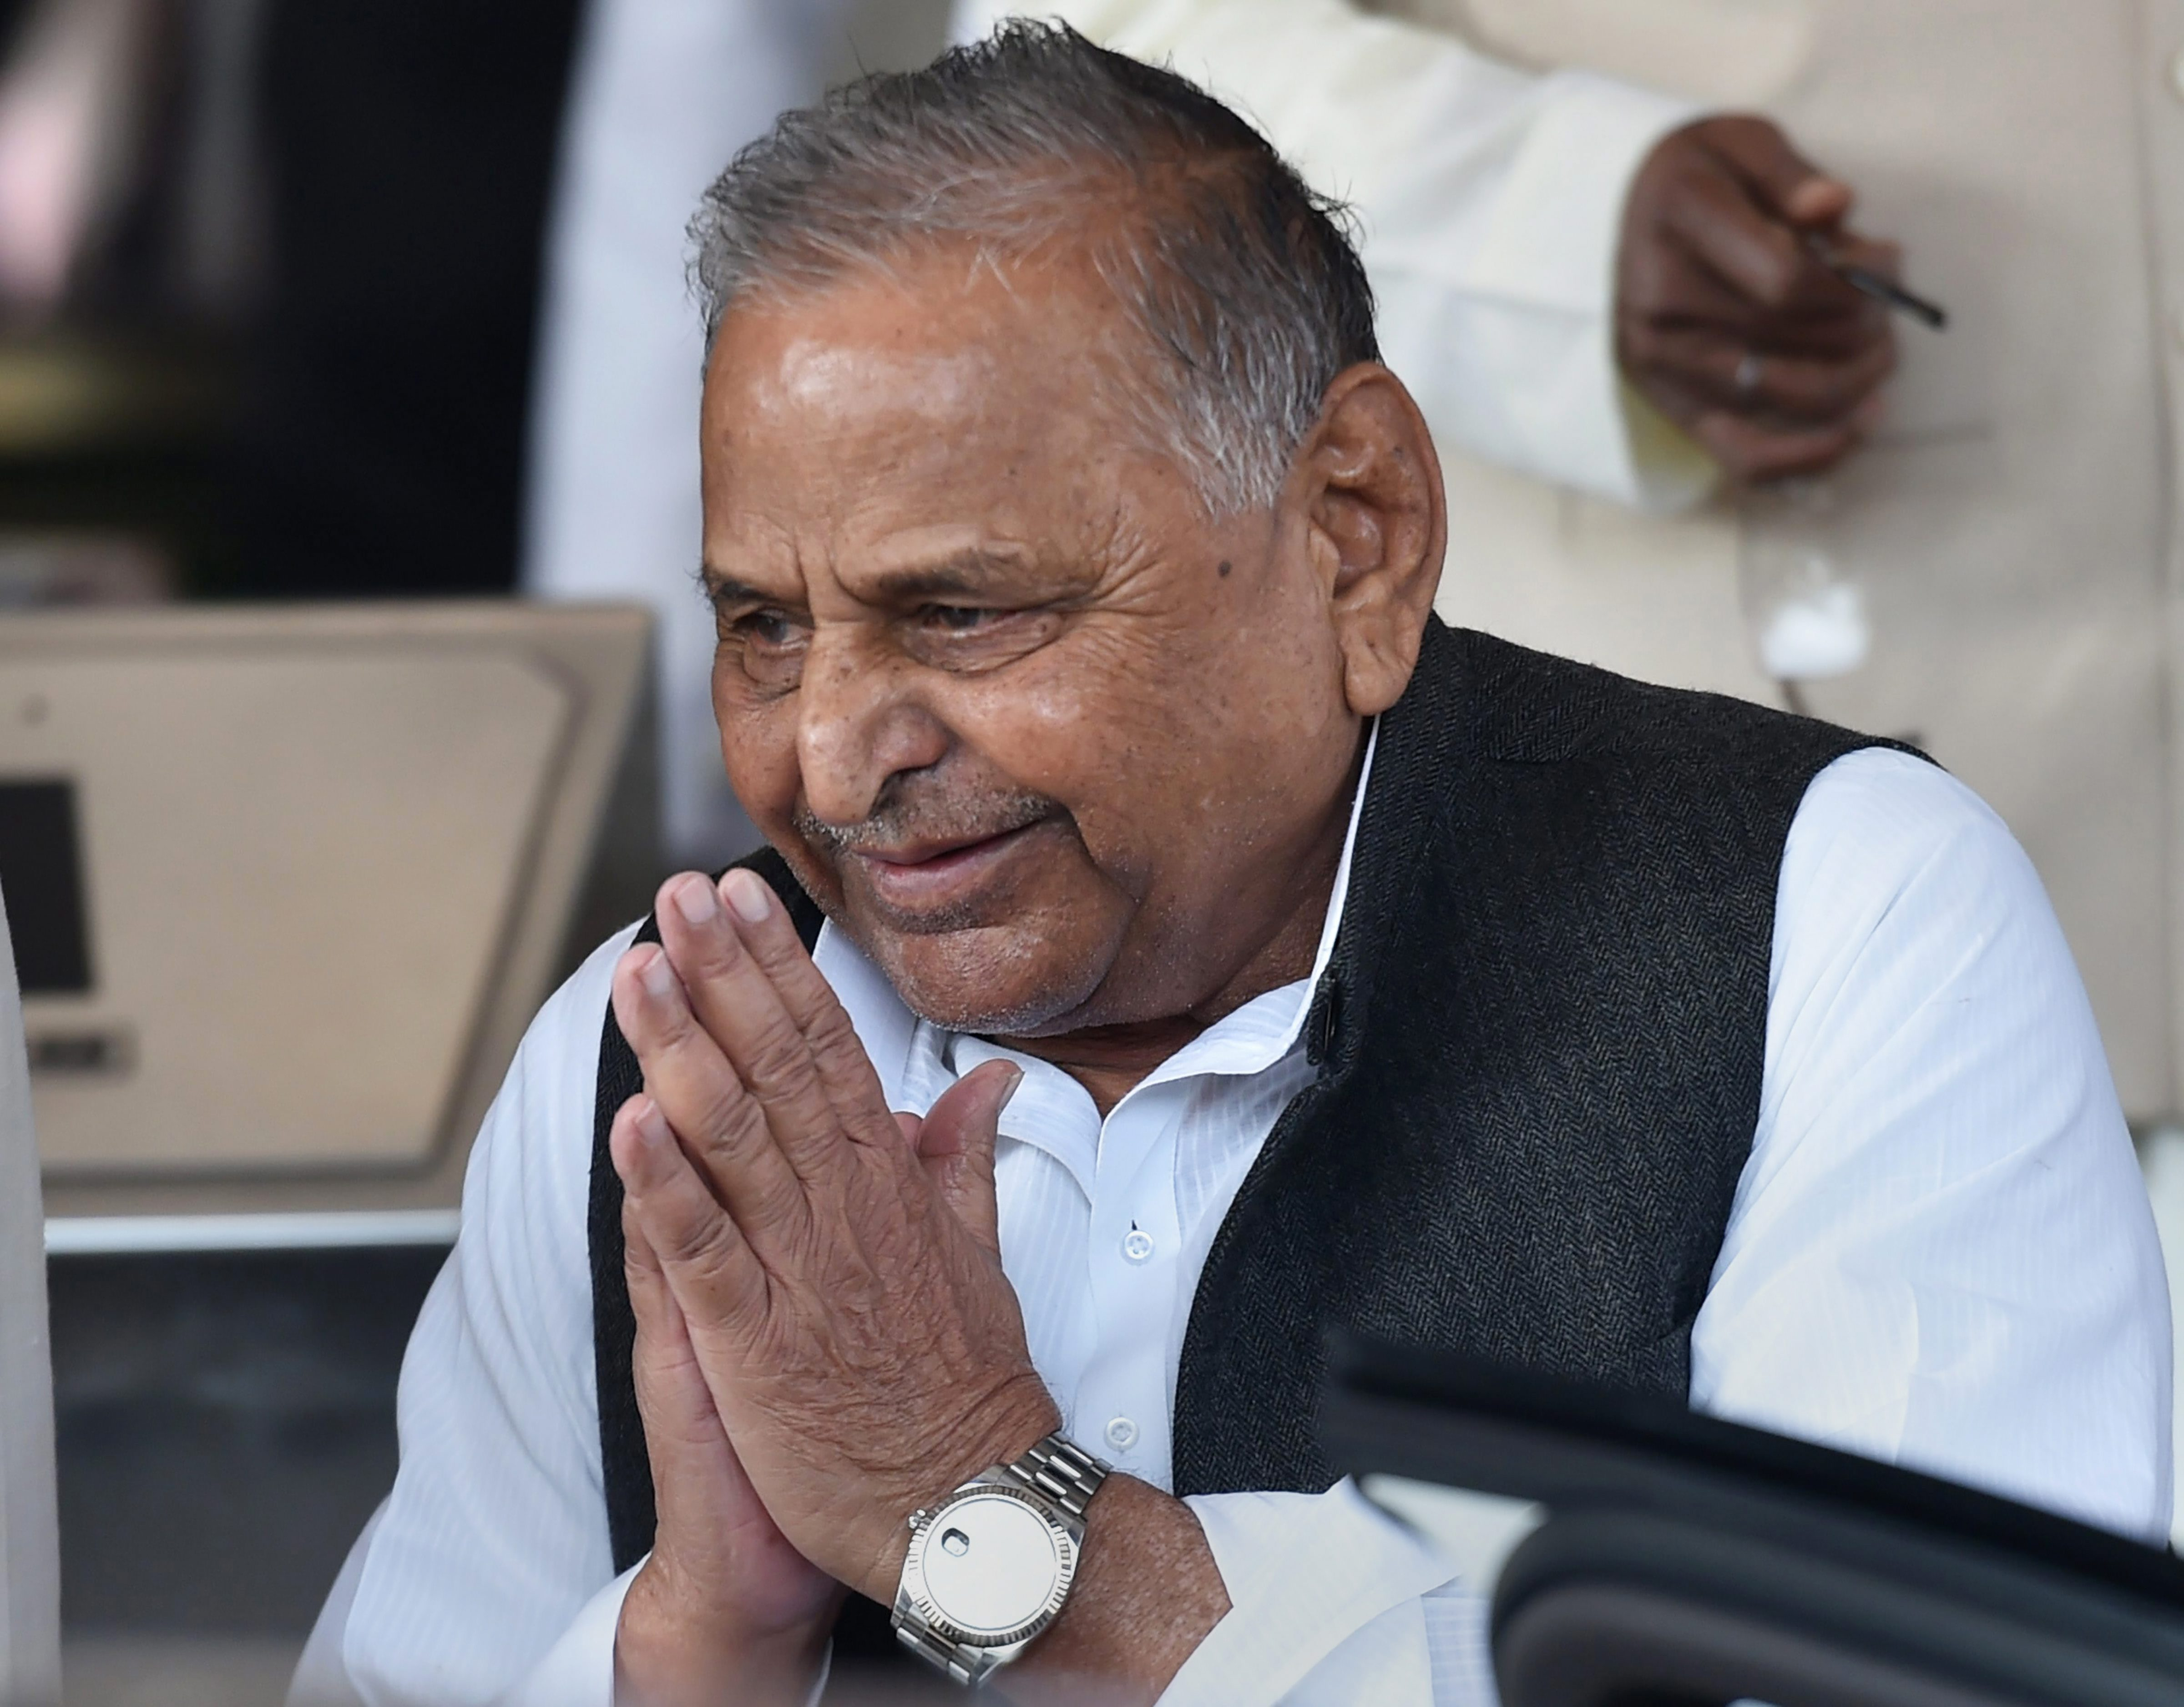 Former UP chief ministers Mulayam Singh Yadav and his son Akhilesh, in their plea filed through advocate Garima Bajaj, have sought appropriate time to vacate their official bungalows. PTI file photo